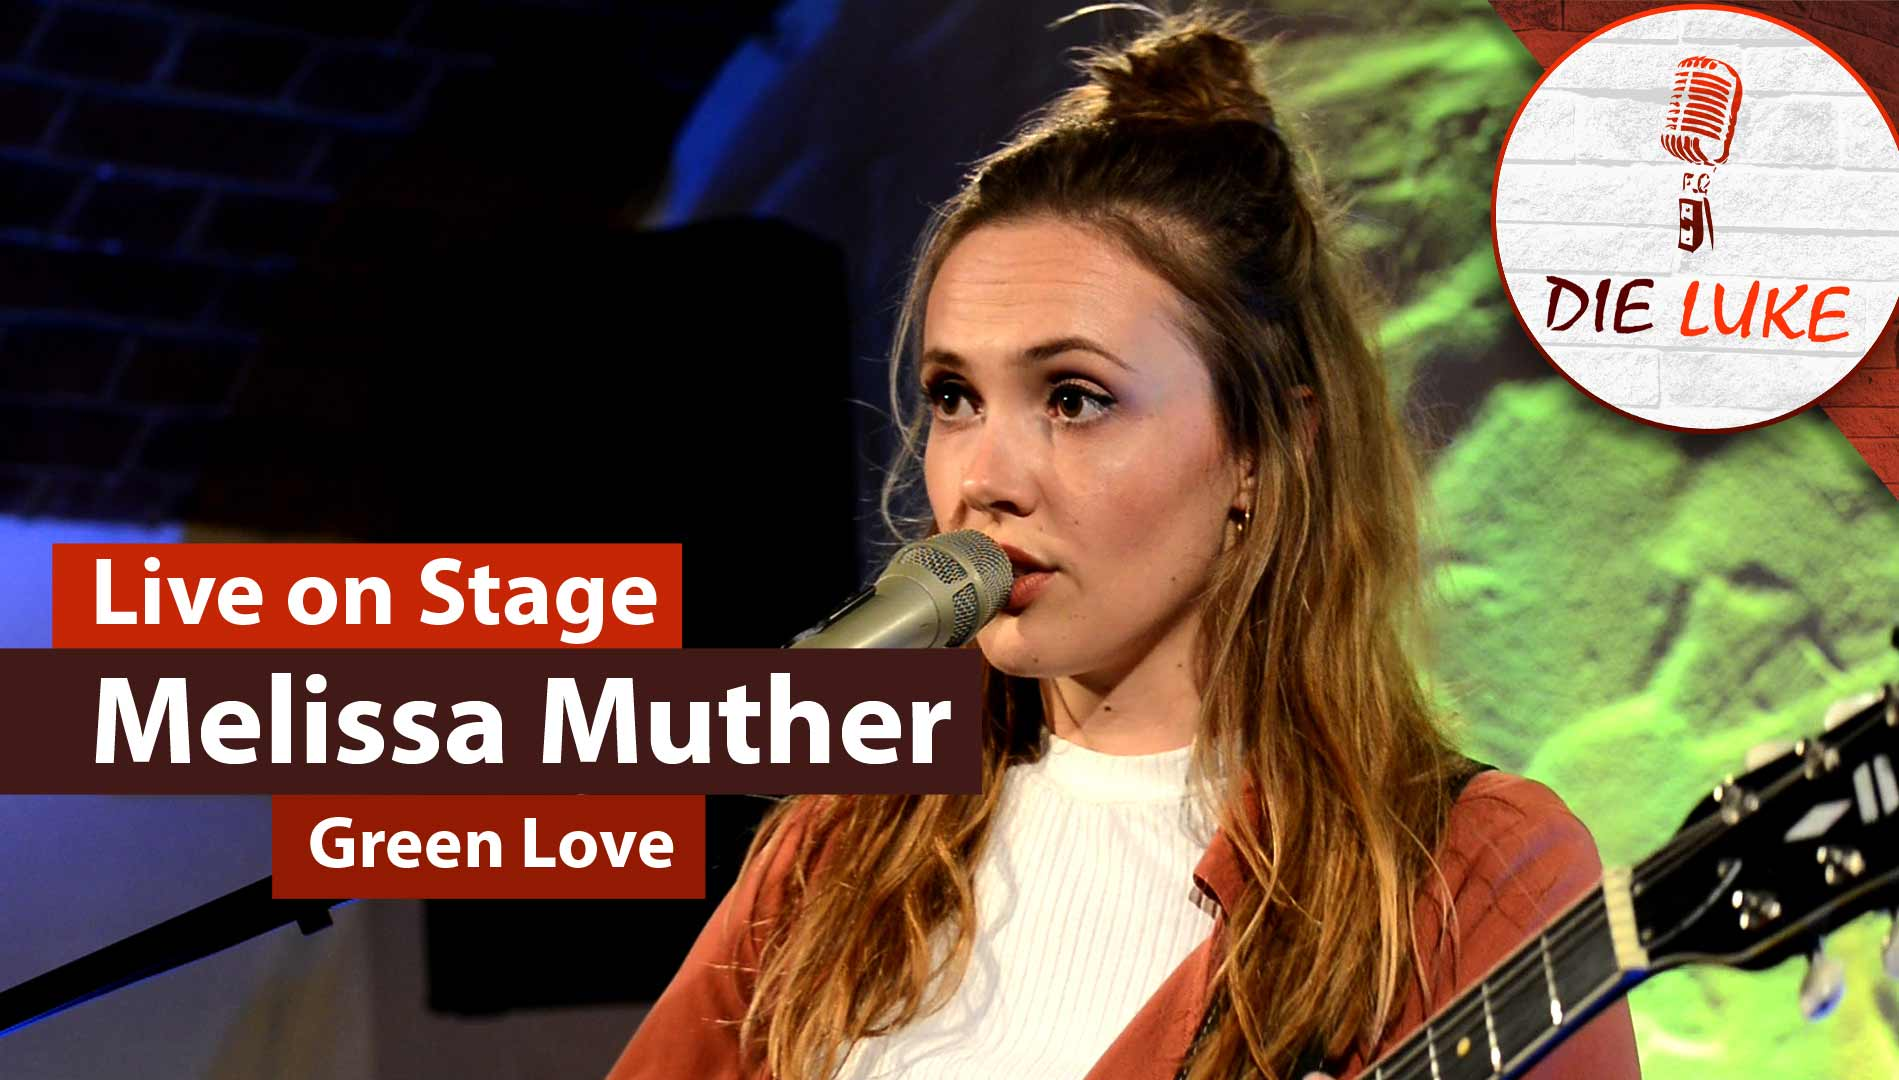 Melissa Muther | Green Love